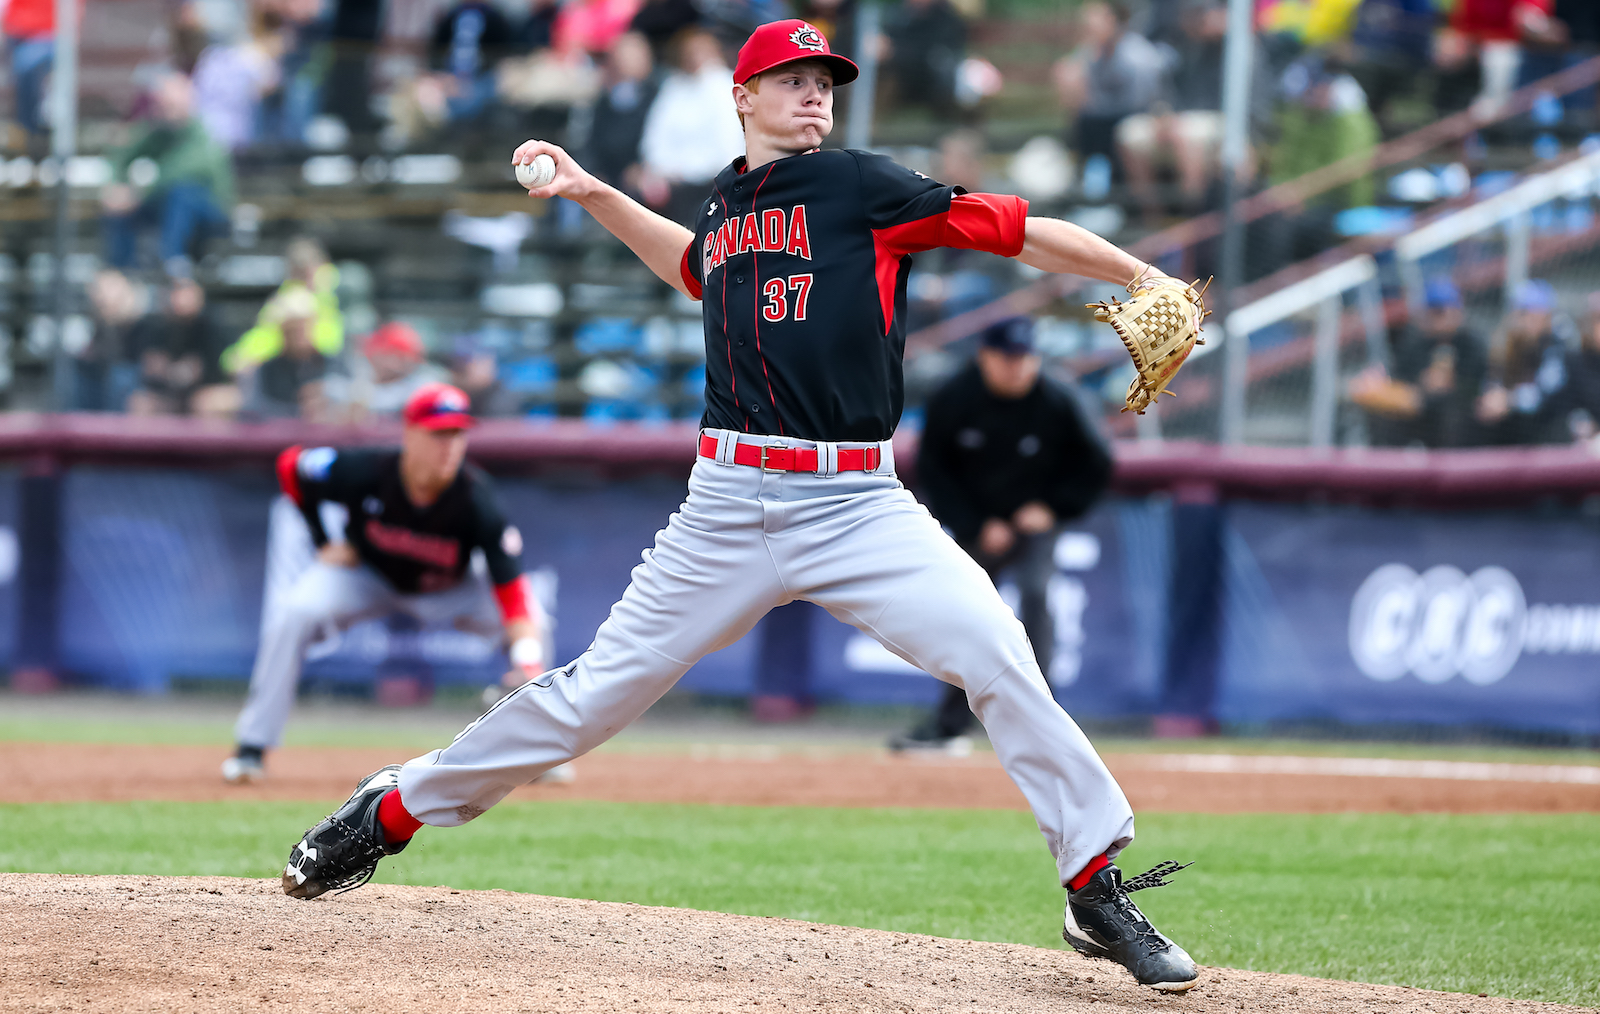 Baseball Canada names 32 athletes to Fall Instructional League roster